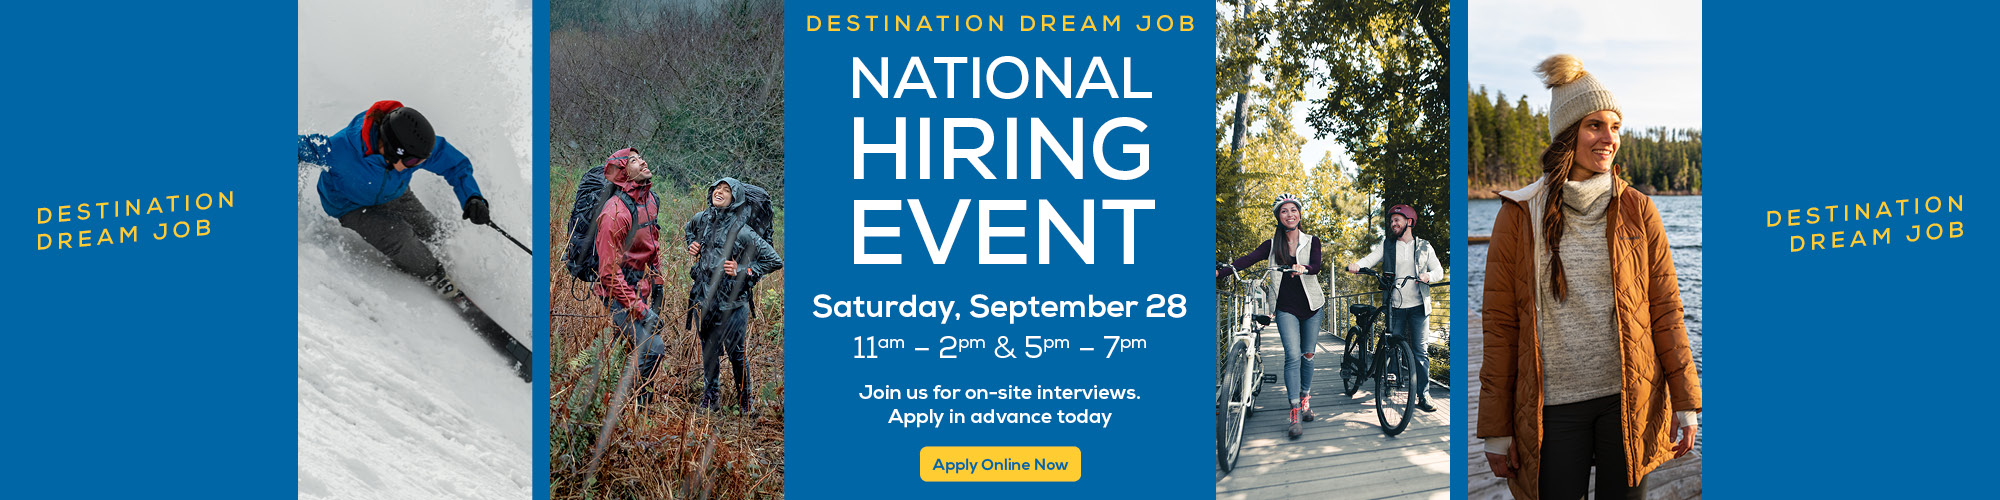 National Hiring Event. Find your journey. Join us for on-site interviews. Apply online today.